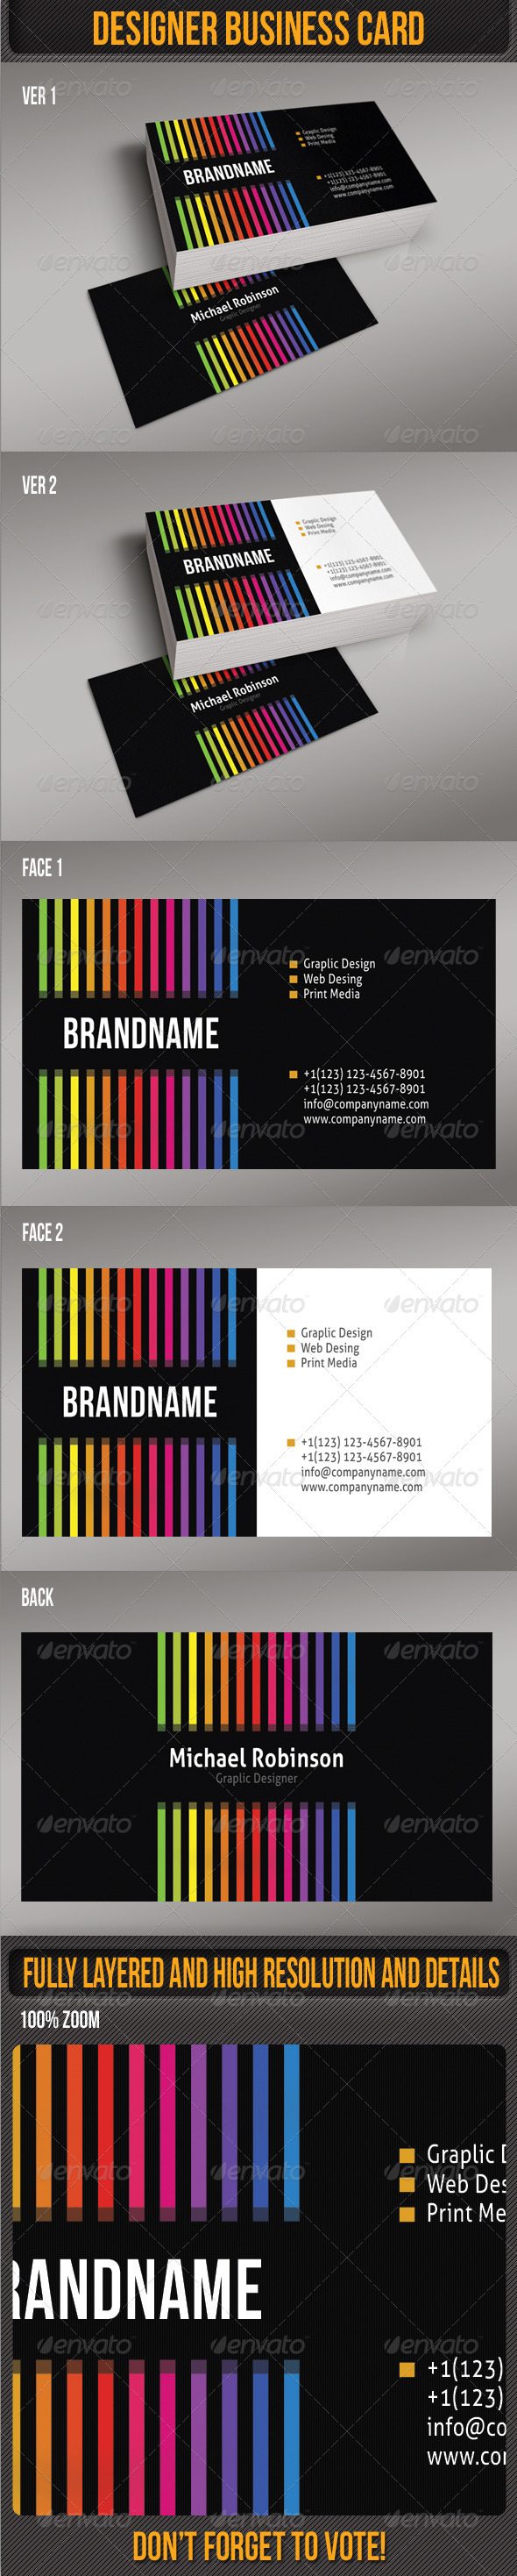 GraphicRiver Designer Business Card 4869419